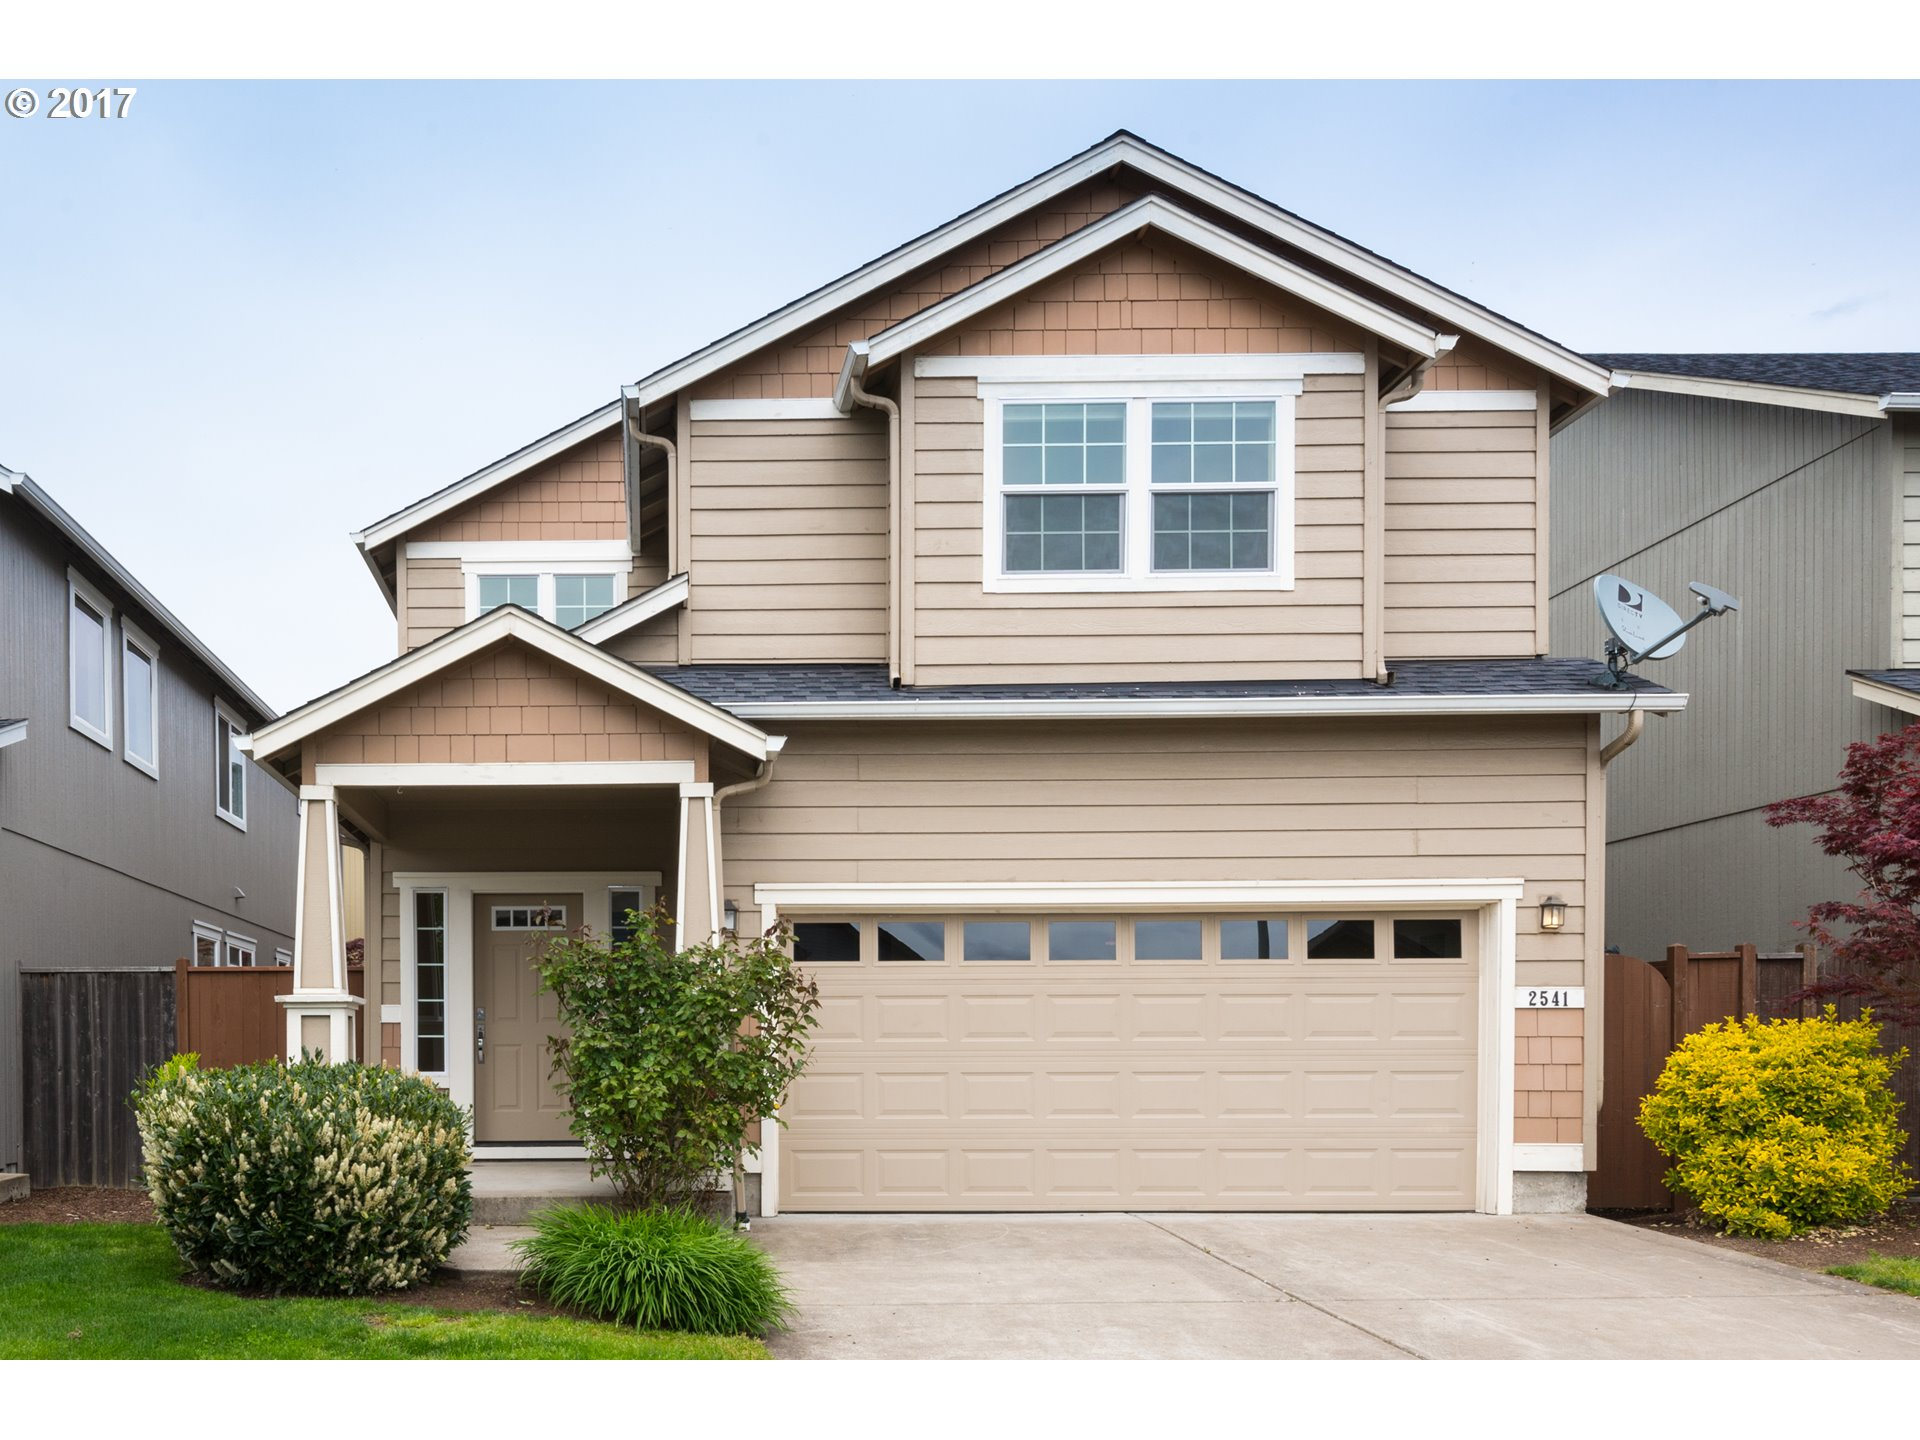 2541 Park View, Eugene, OR 97408